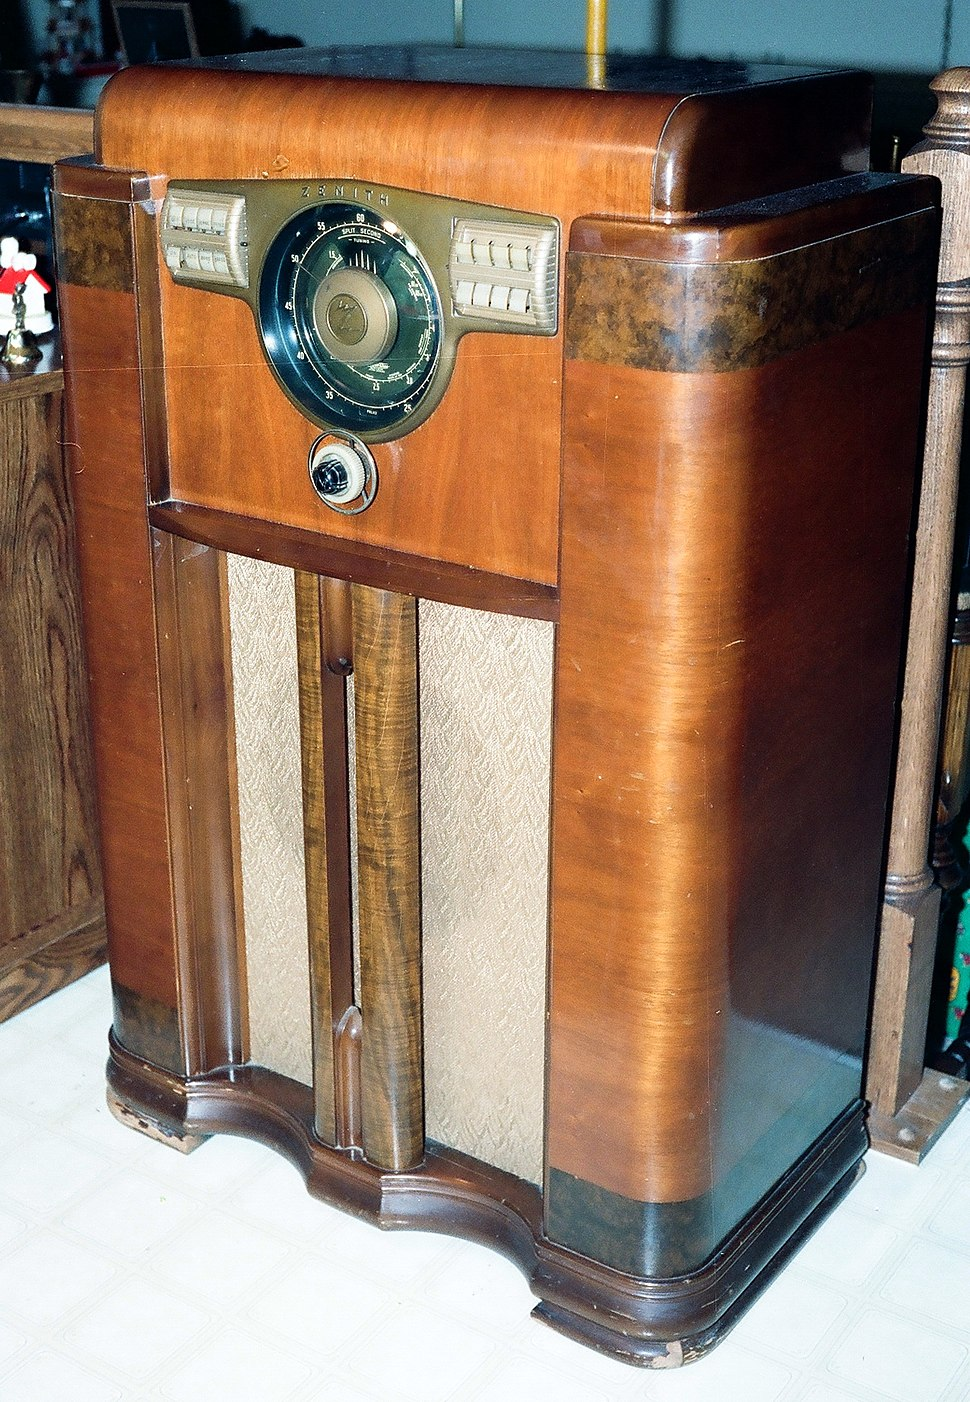 Vintage Zenith Console Radio, Model 12S-568, With the Zenith Robot (or Shutter) Dial, Circa 1941 (8655513293)